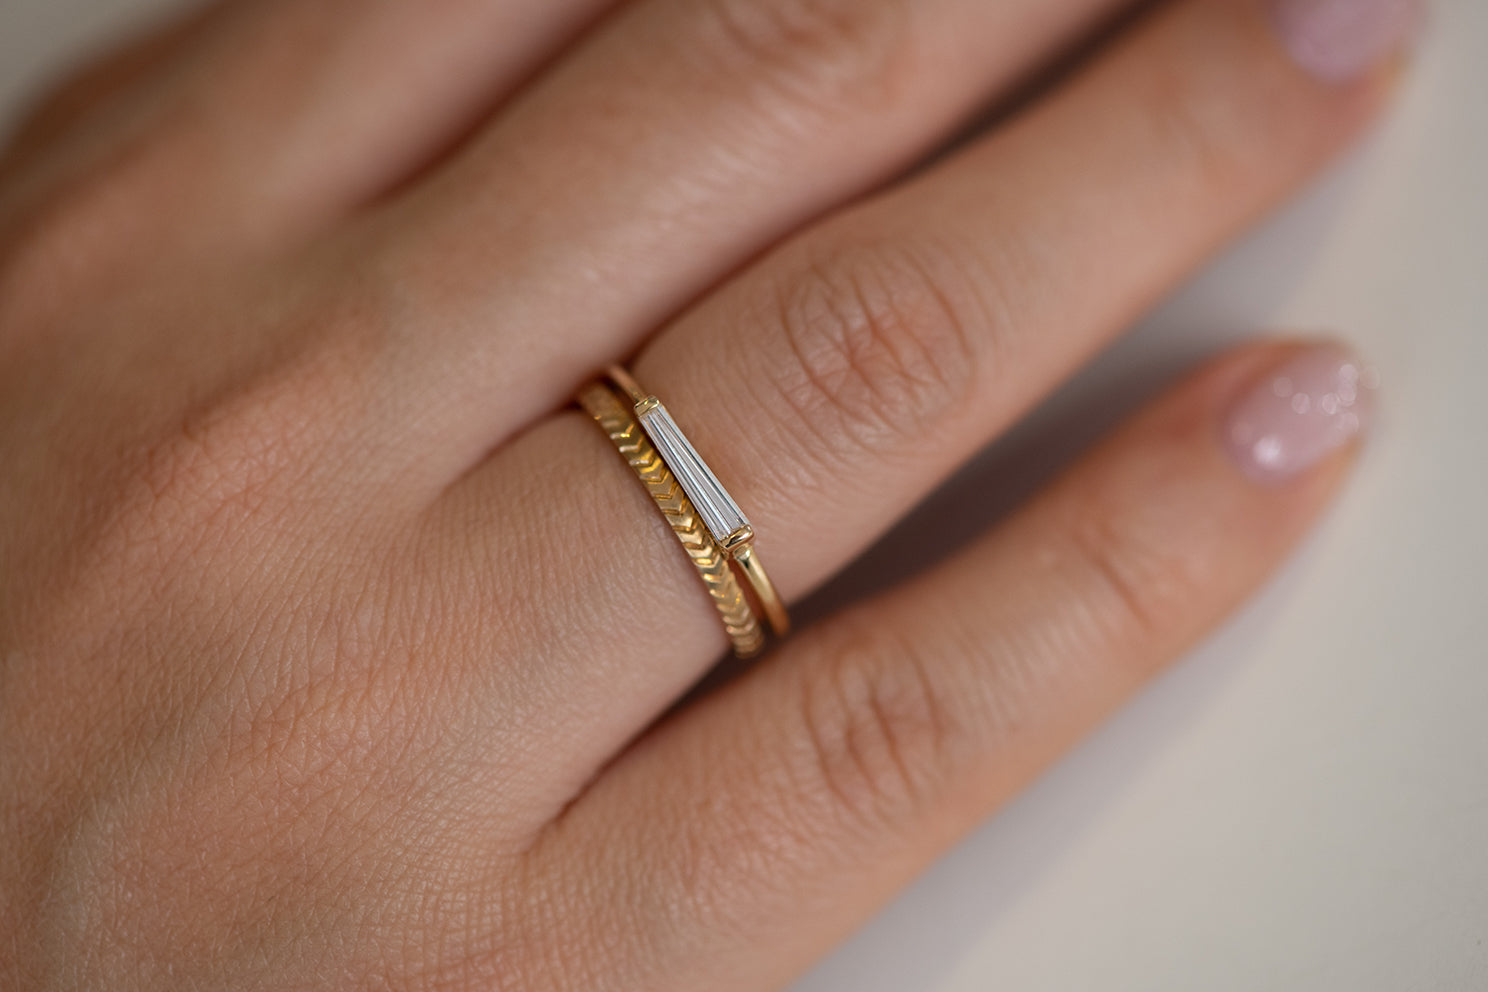 Tapered Baguette Diamond Ring - OOAK in Set on Hand